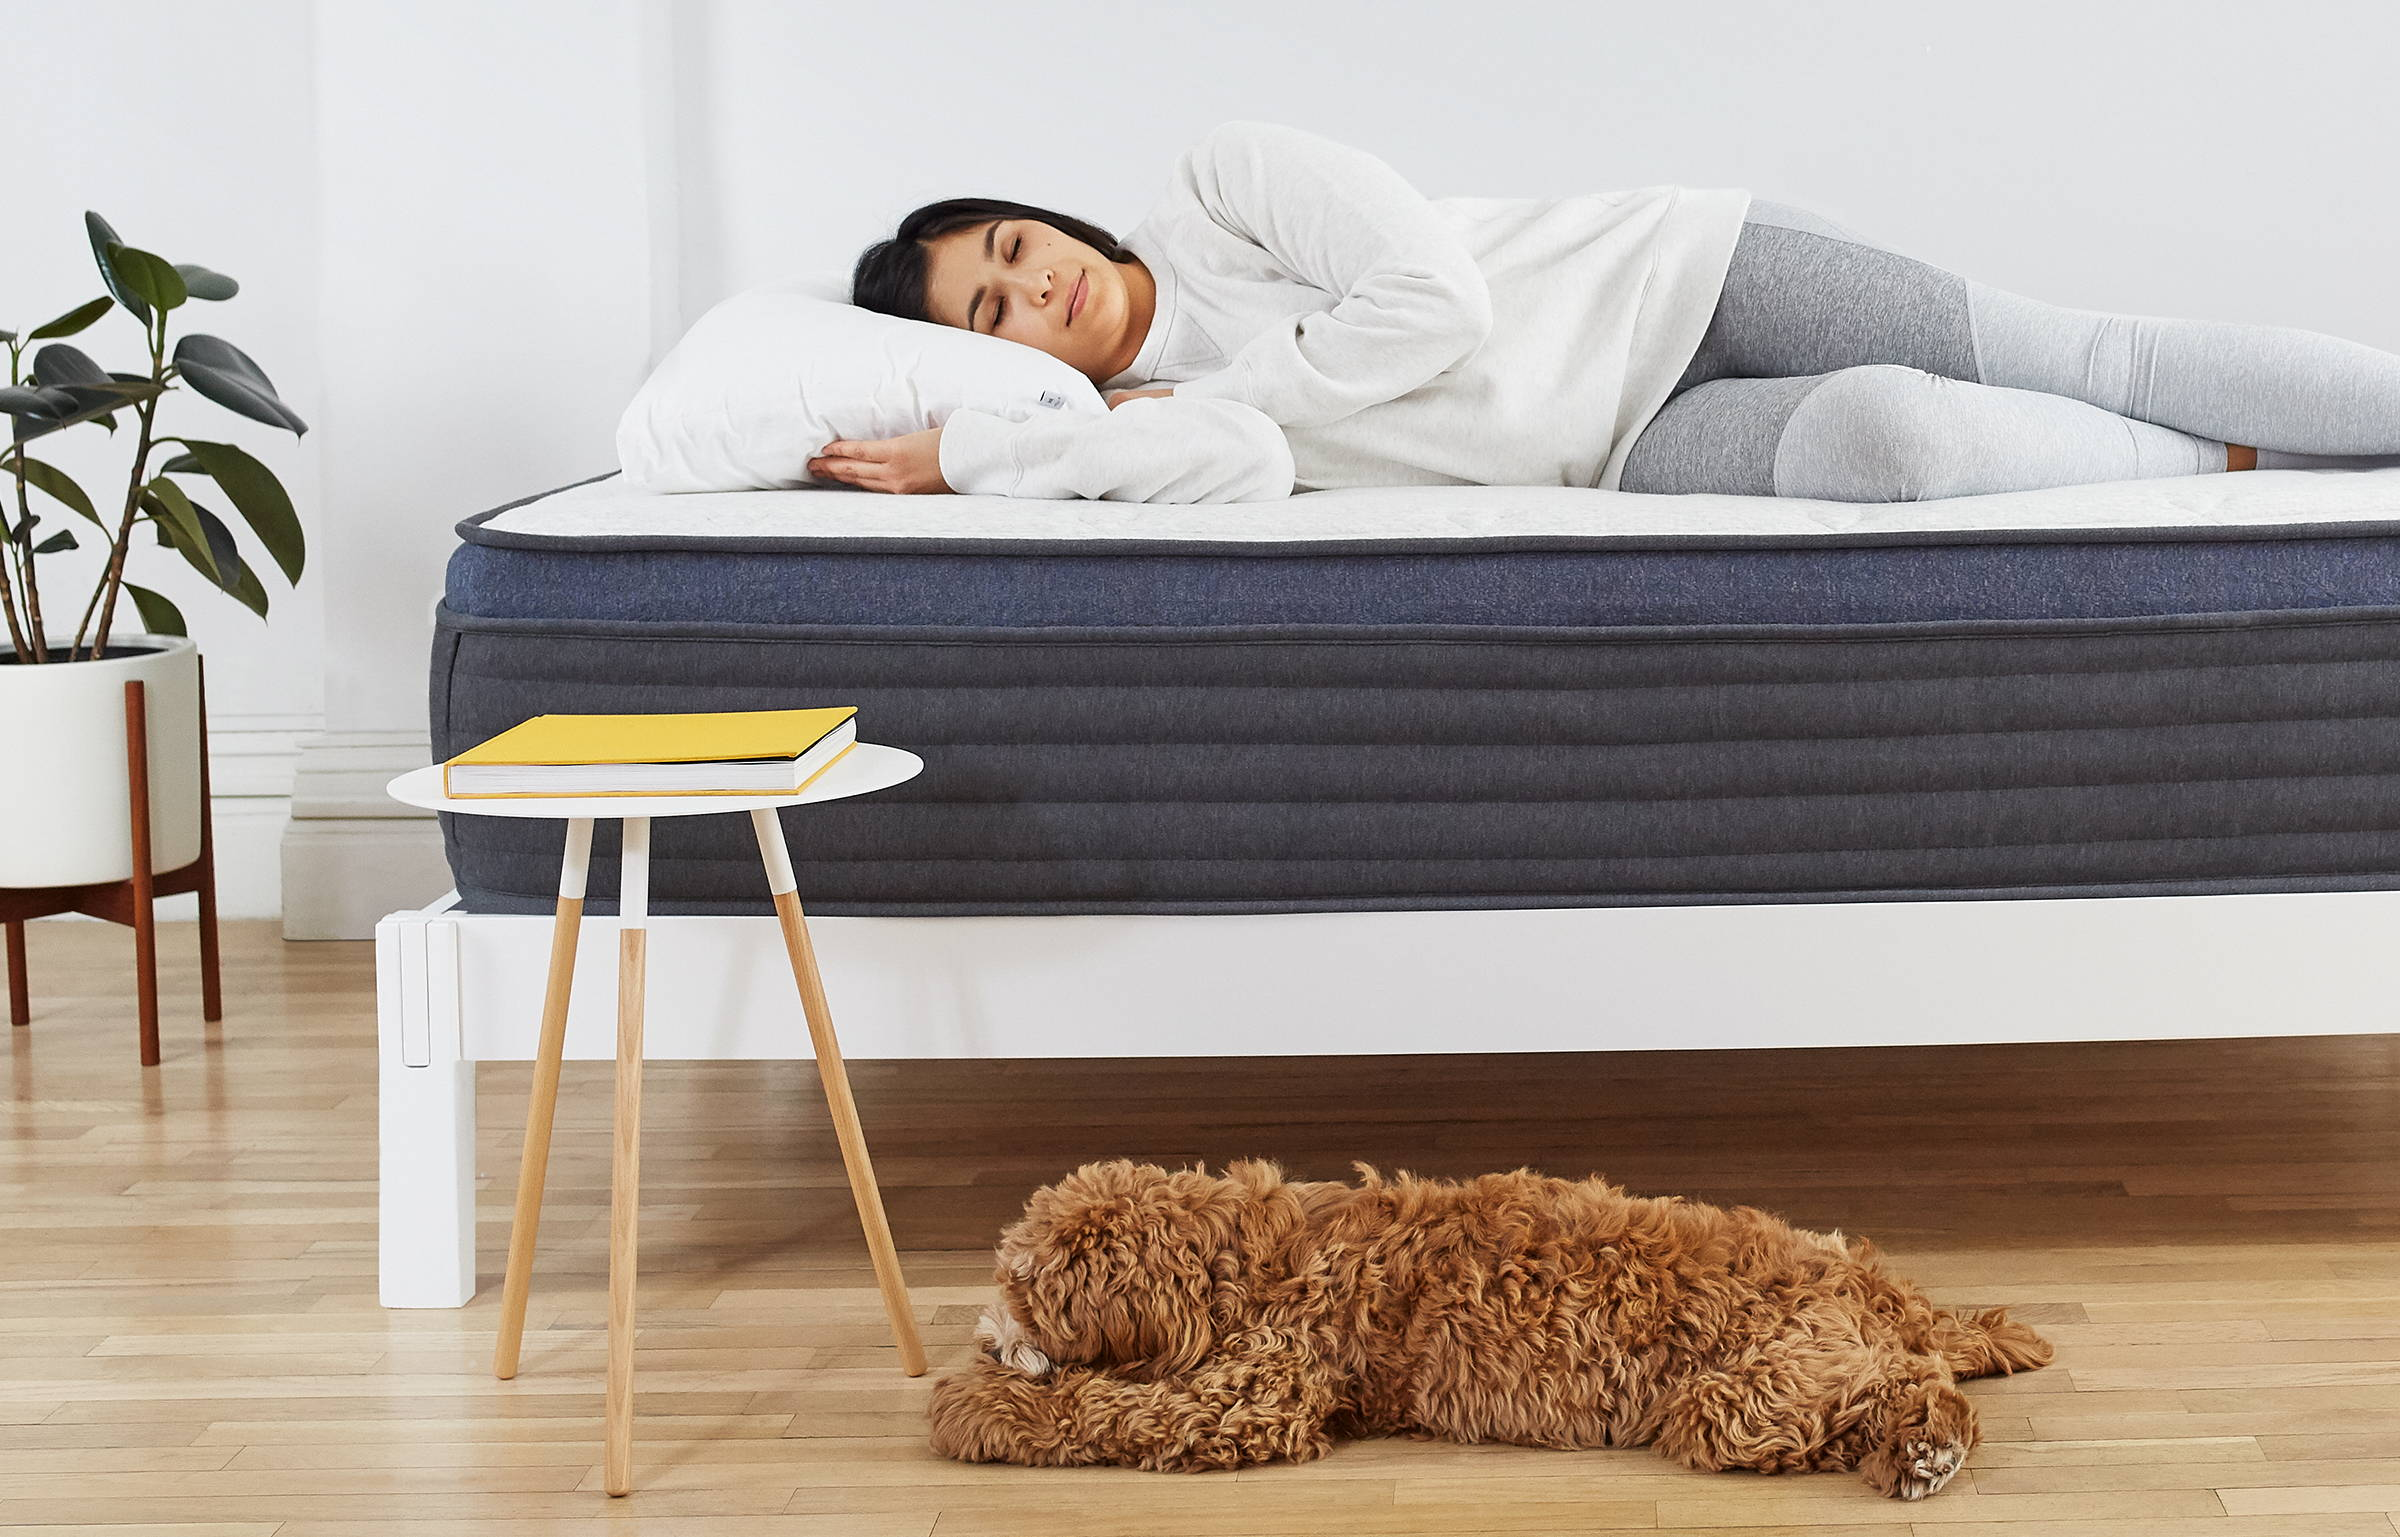 Woman laying on Helix Midnight Luxe mattress on Helix White Wooden Frame with Teddy Bear on the ground